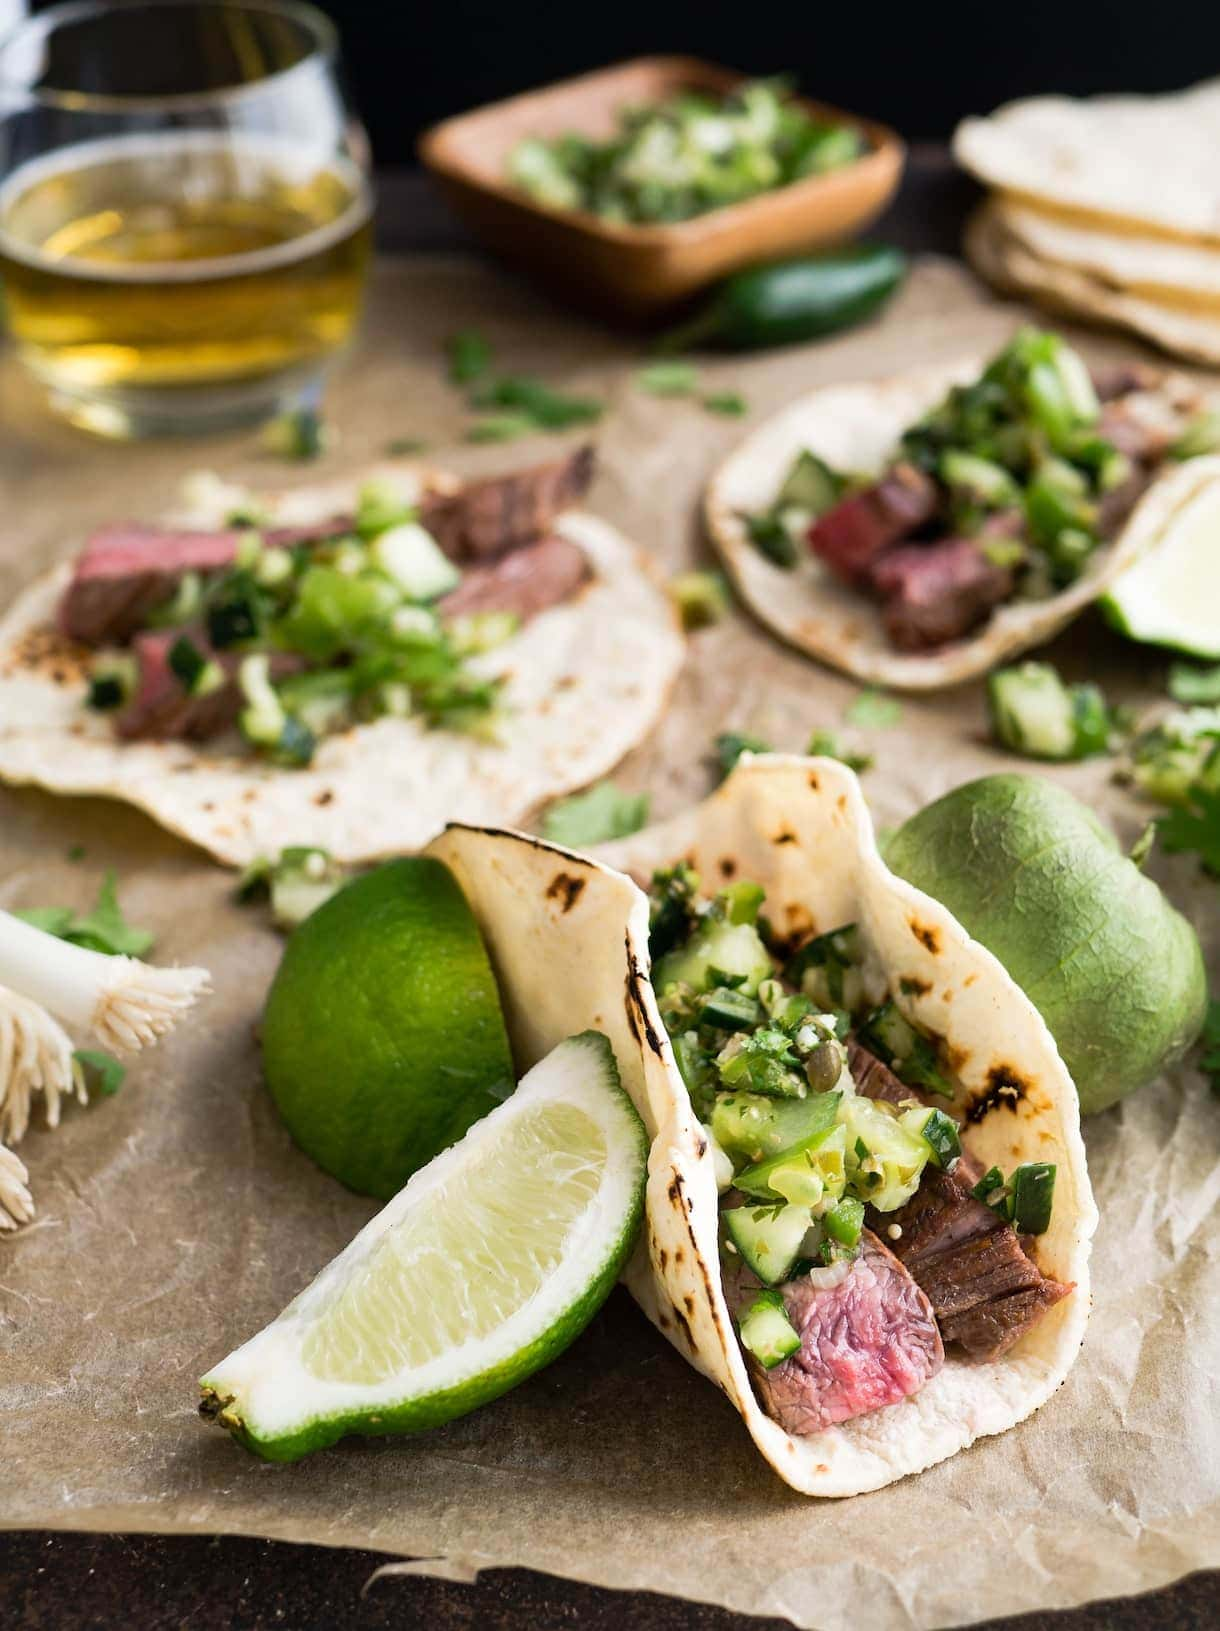 steak tacos with salsa verde, limes in backround as well as glass of beer